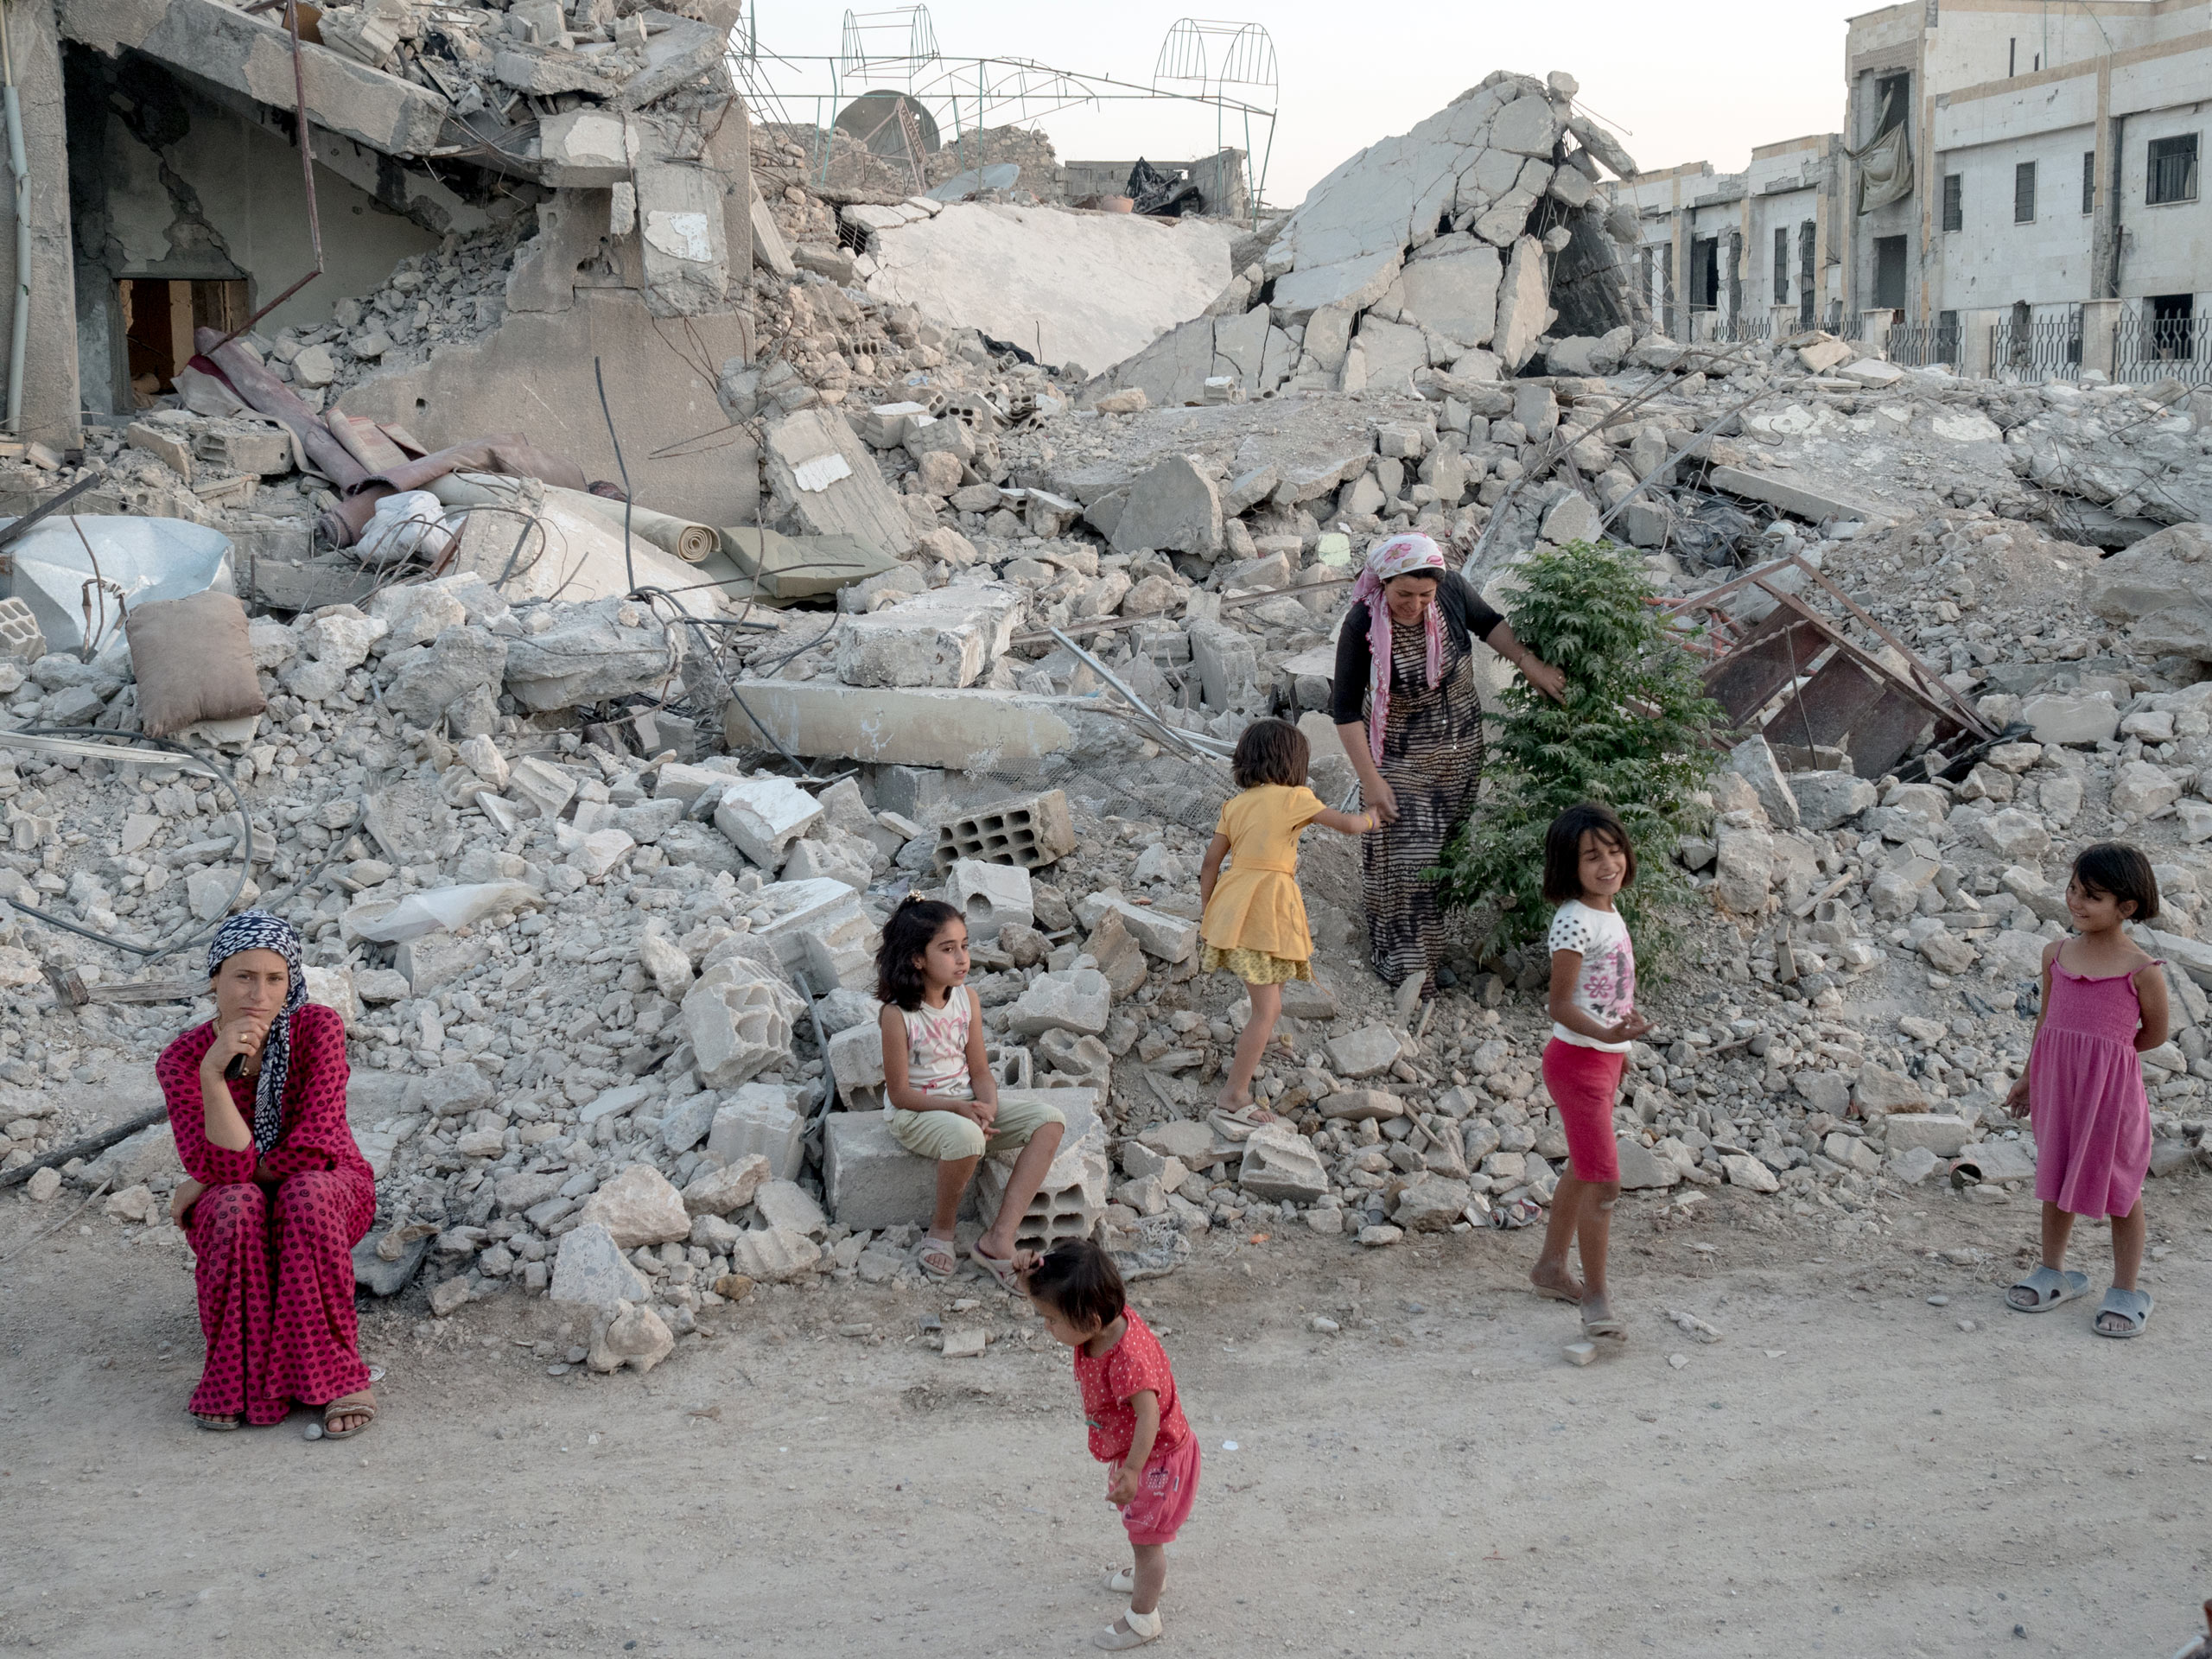 A family stands on what is left of their home. Kobani, Syria. Aug. 6, 2015.